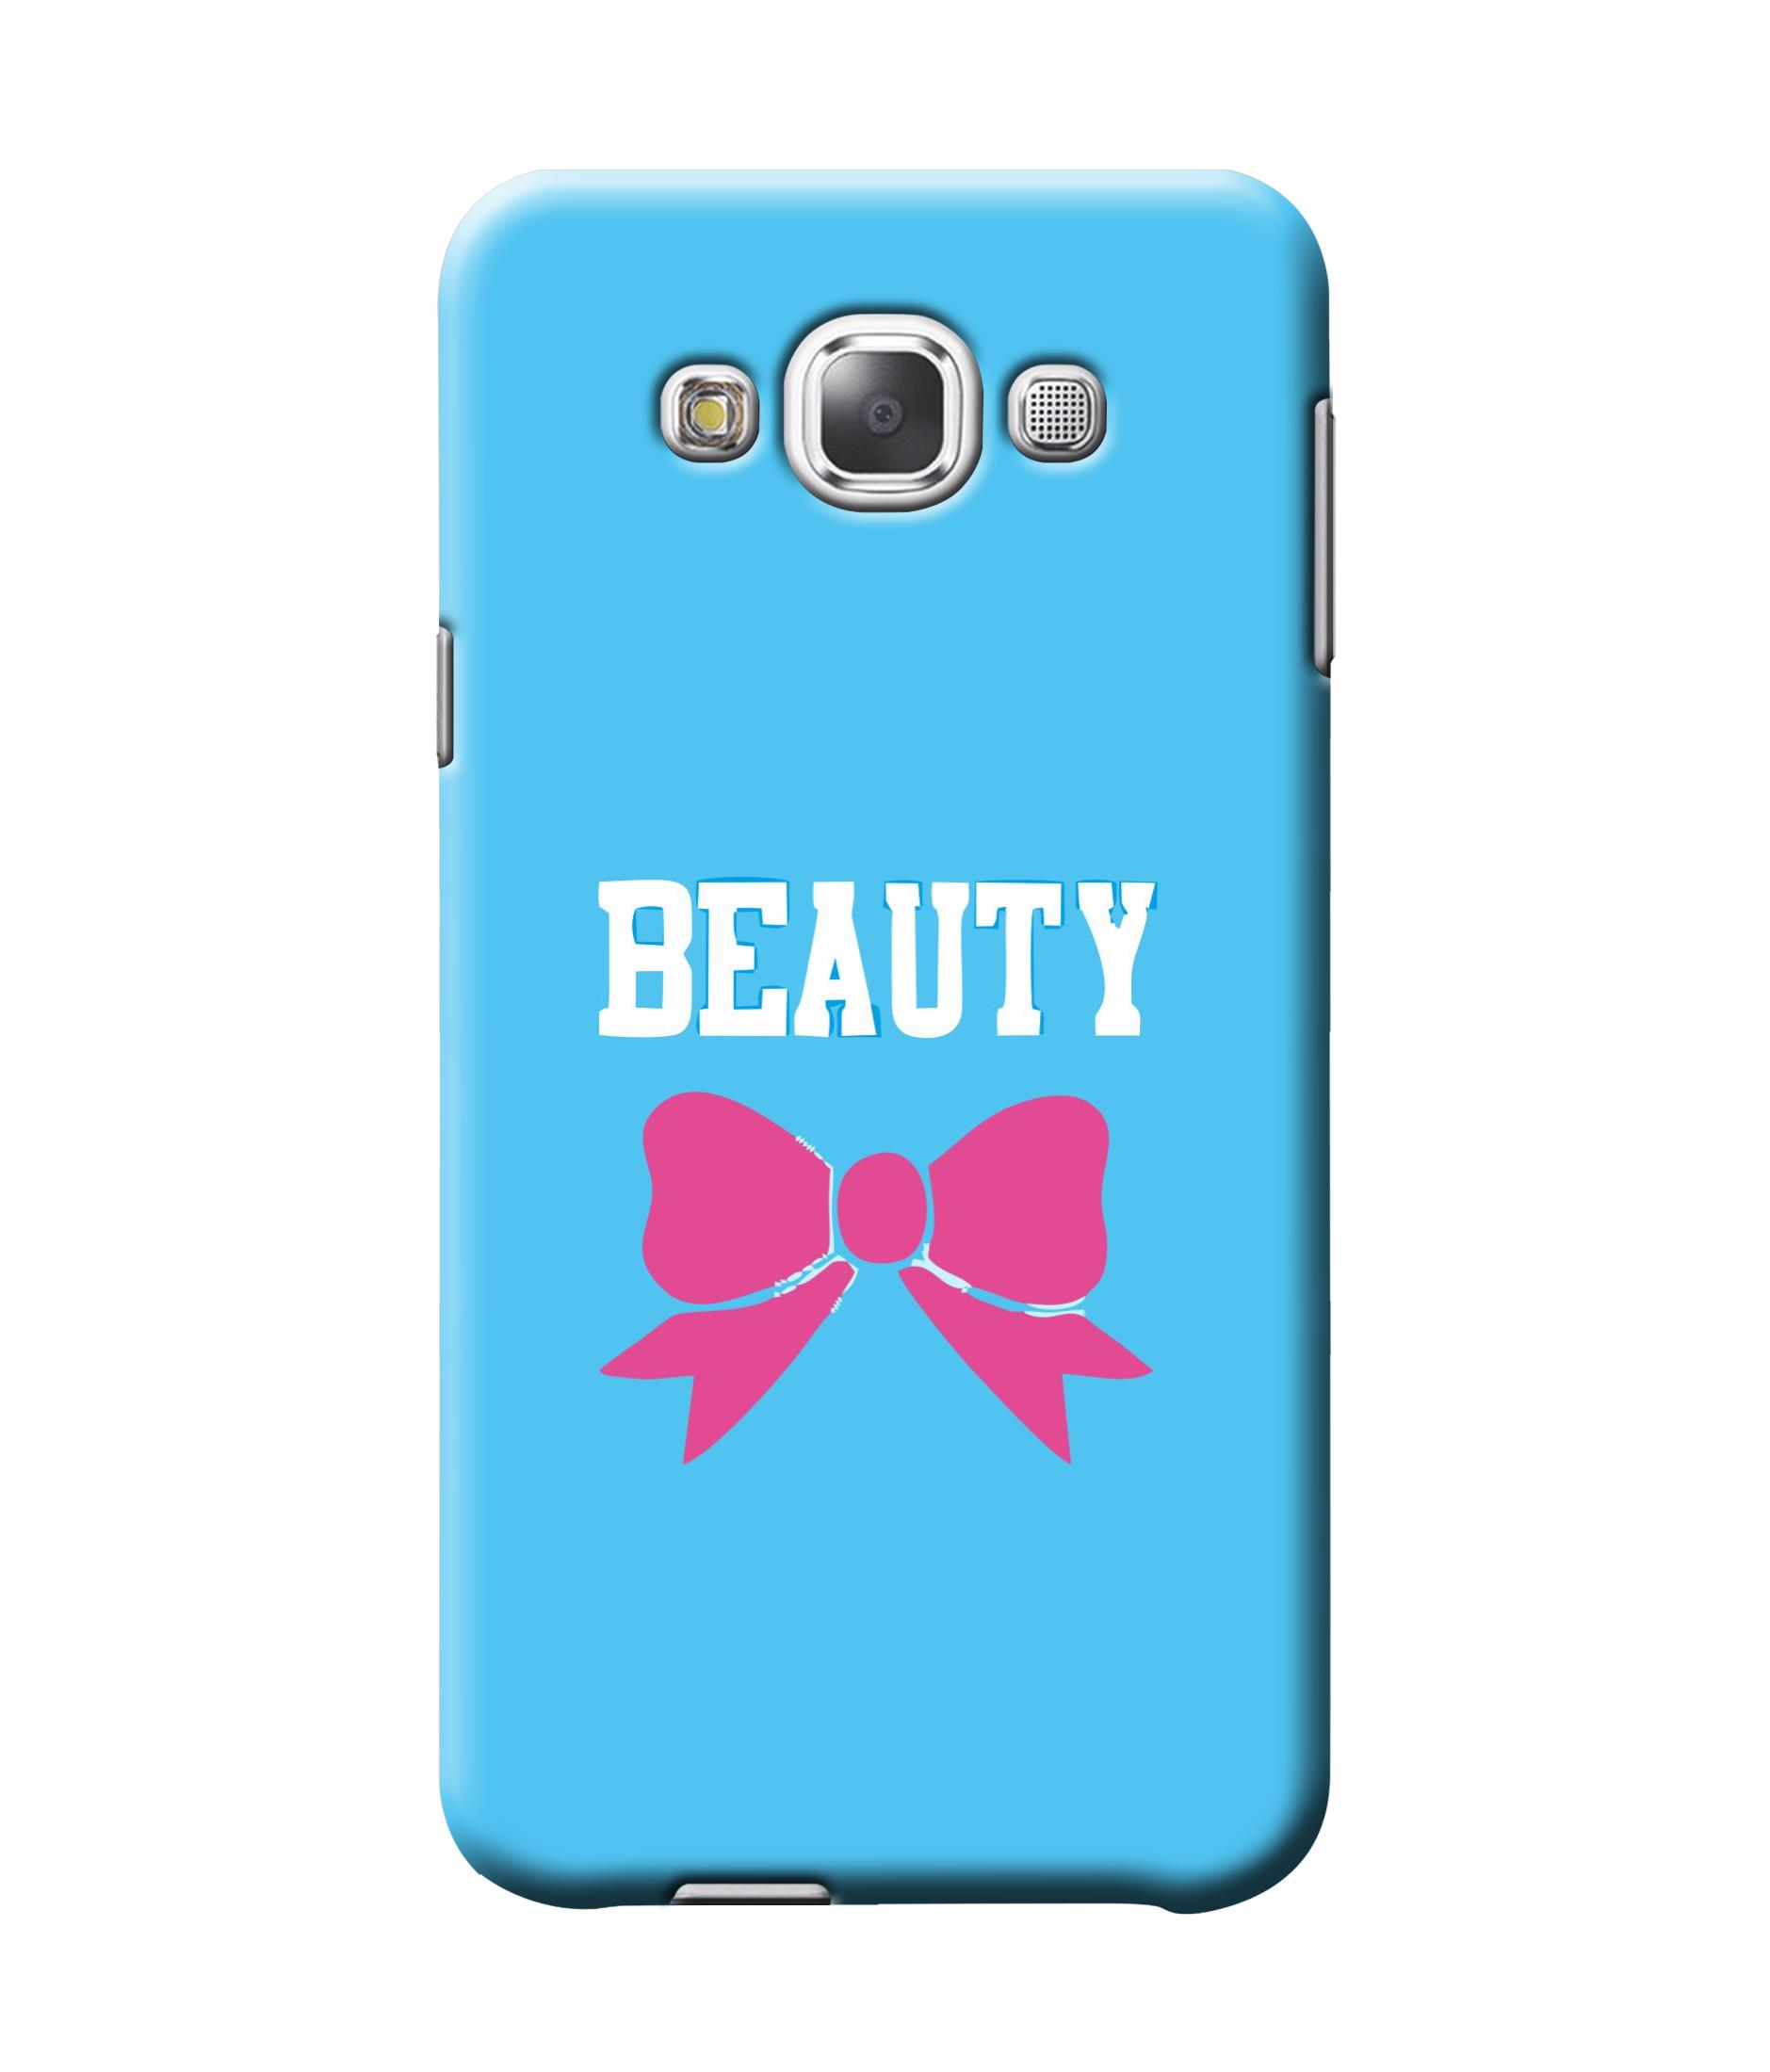 caseophile2 Samsung Galaxy E7 Beauty Blue Mobile Case